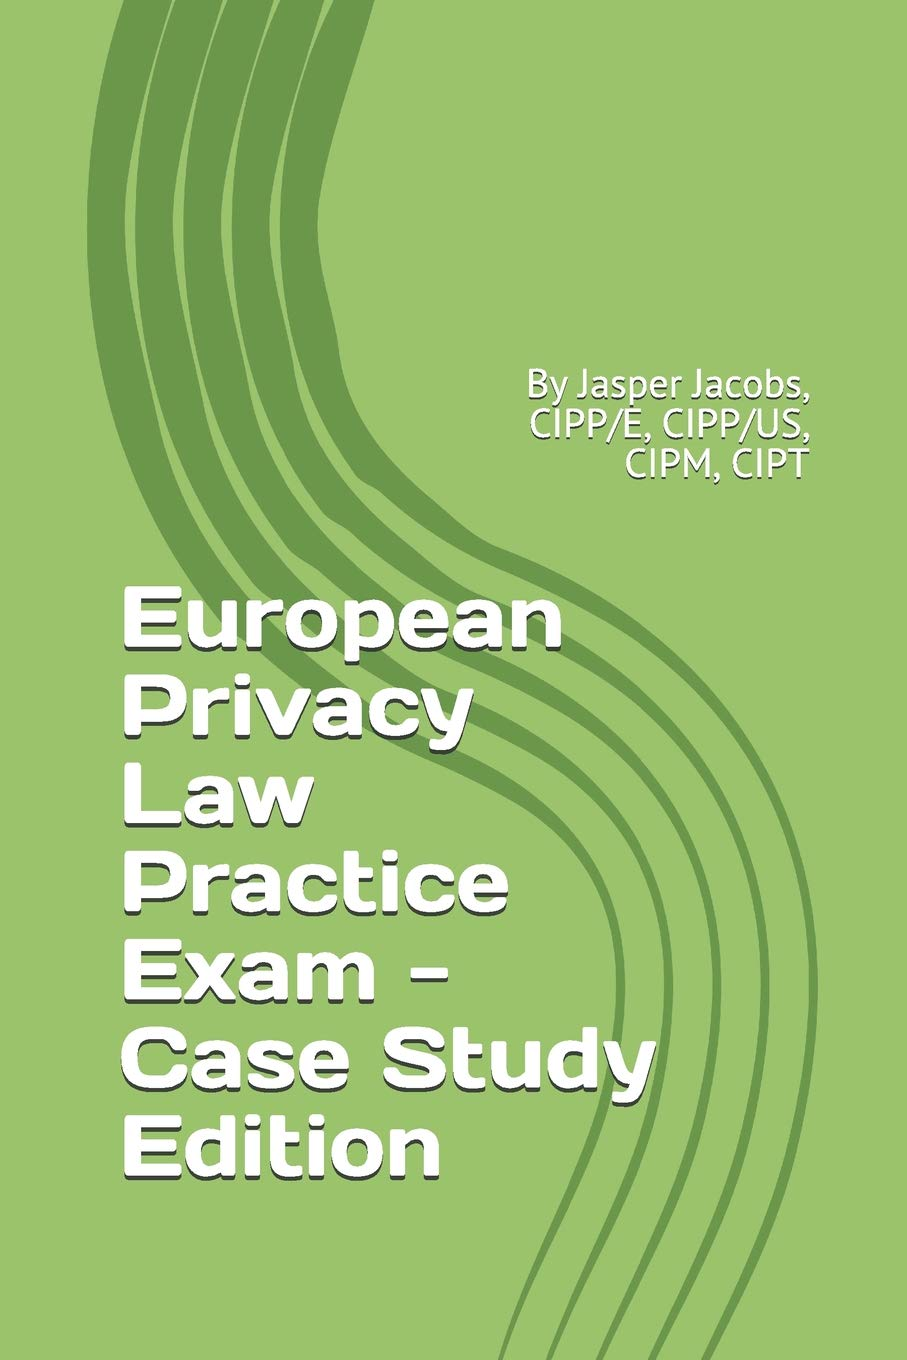 European Privacy Law Practice Exam   Case Study Edition  By Jasper Jacobs CIPP E CIPP US CIPM CIPT